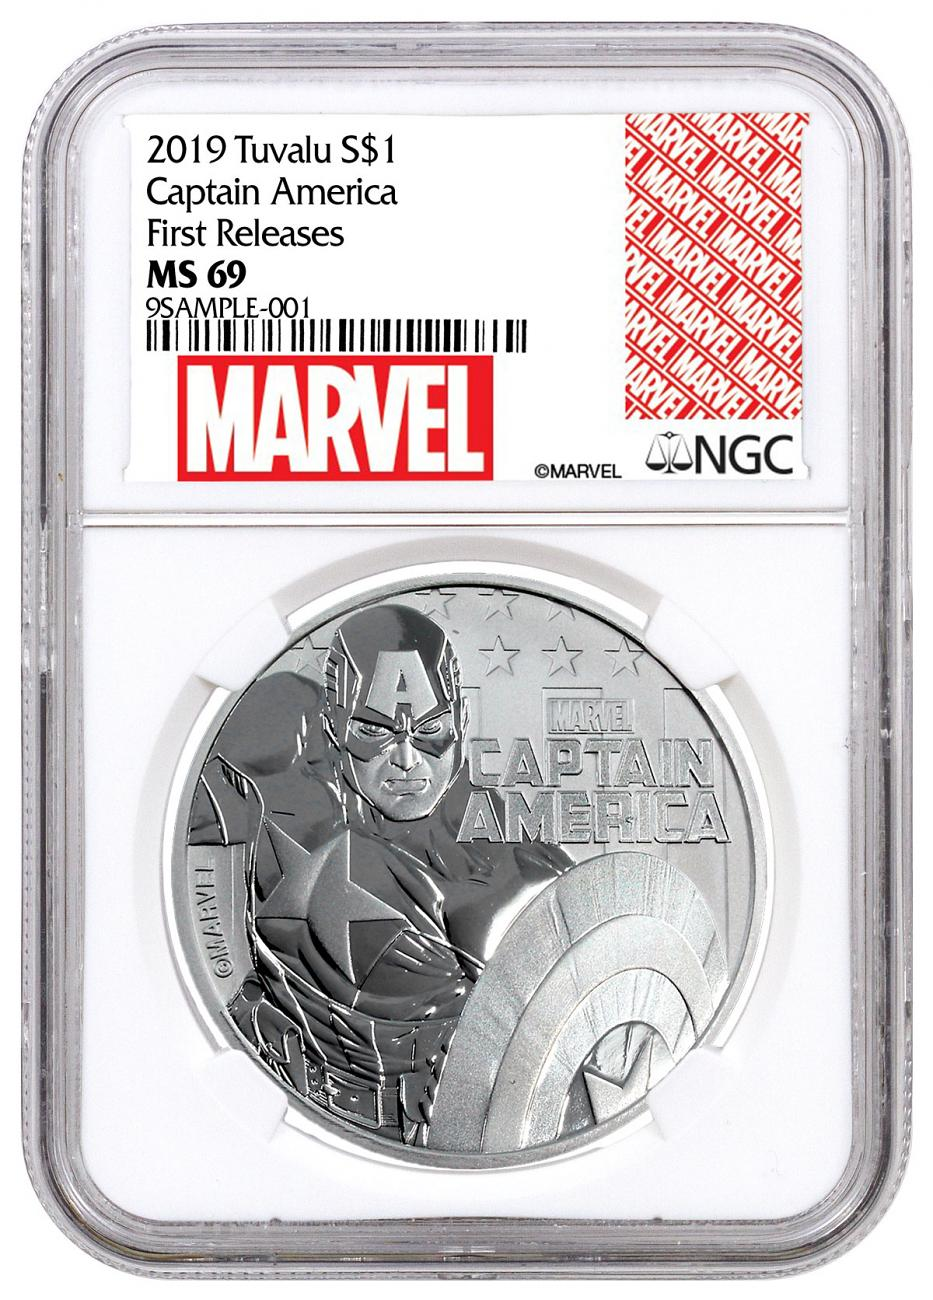 2019 Tuvalu Captain America 1 oz Silver Marvel Series $1 Coin NGC MS69 FR Exclusive Marvel Label